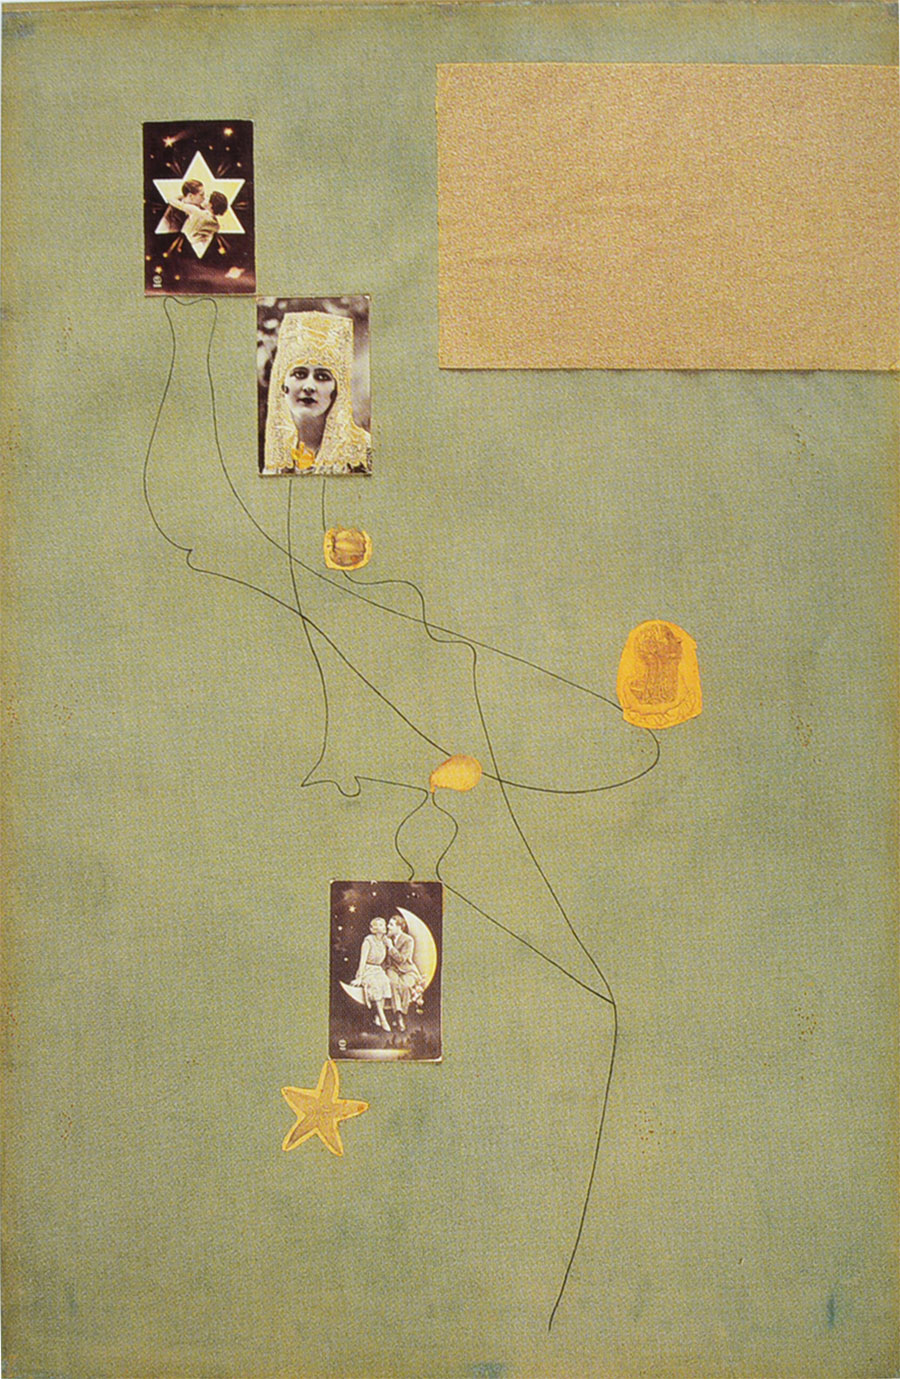 Miró - Dibujo-collage